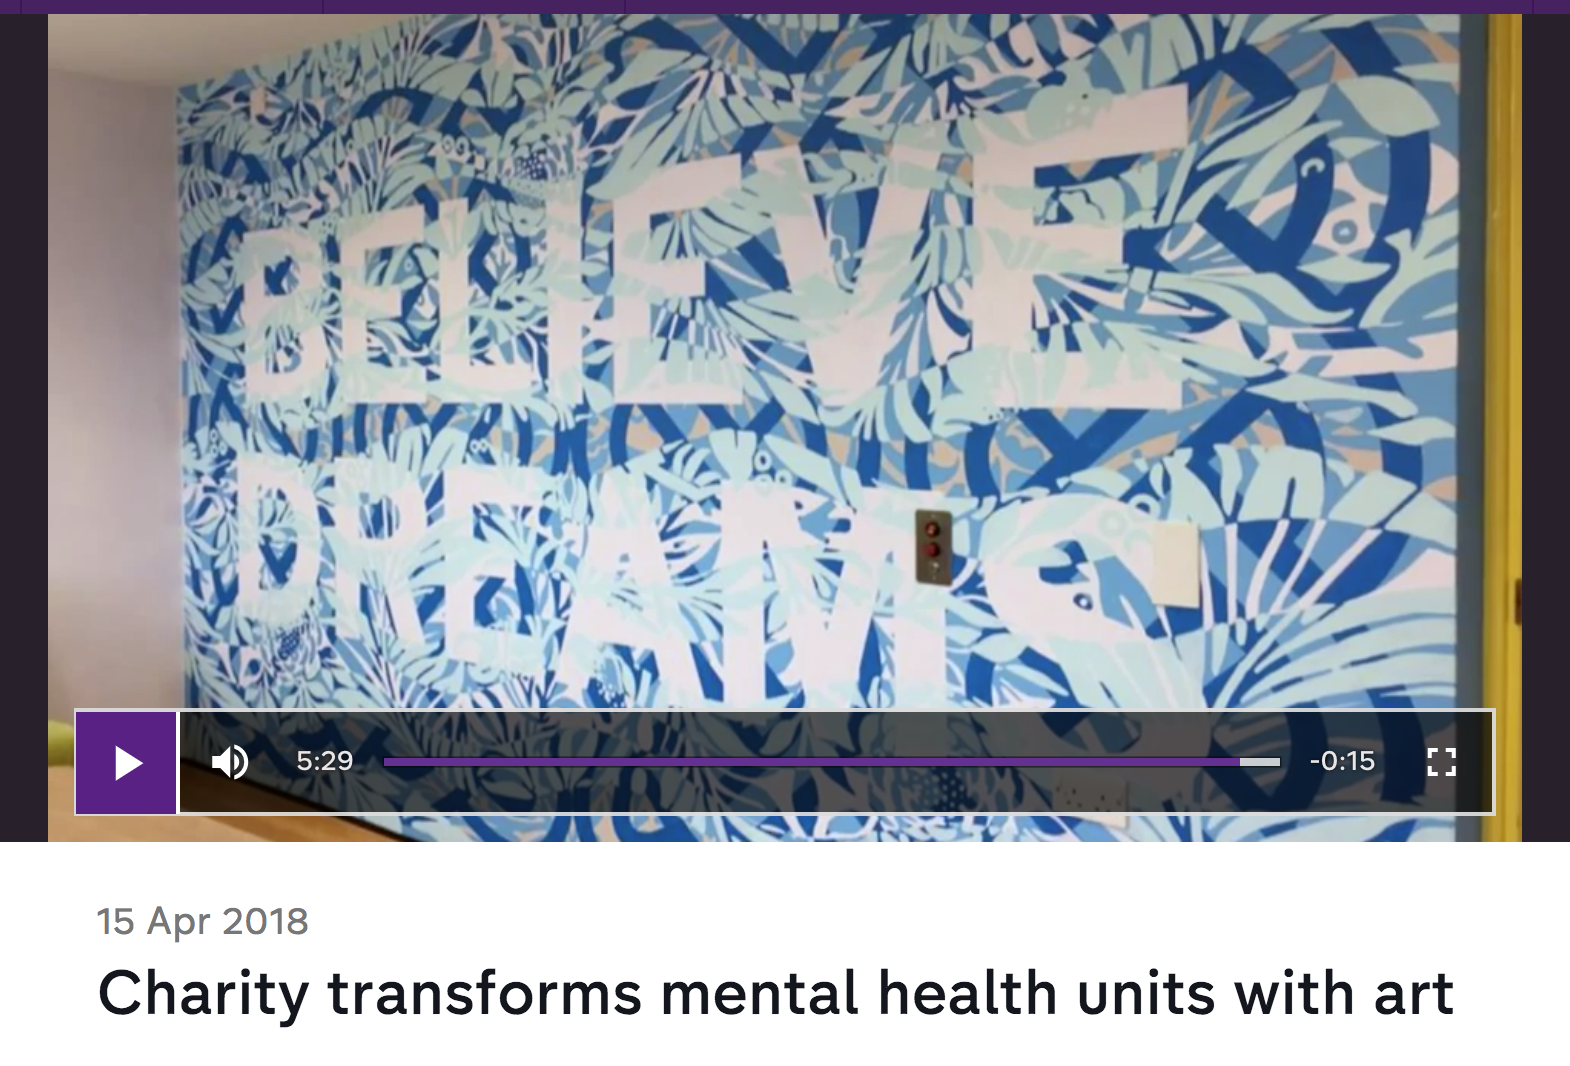 Channel 4 News - Our project at Snowsfields Adolescent Unit was included in a feature about Hospital Rooms on Channel 4 News. Two former patients from Snowfields contributed to the piece, sharing their perspective on working with Hospital Rooms and the difference art has made to the unit. The feature is still available to watch here.